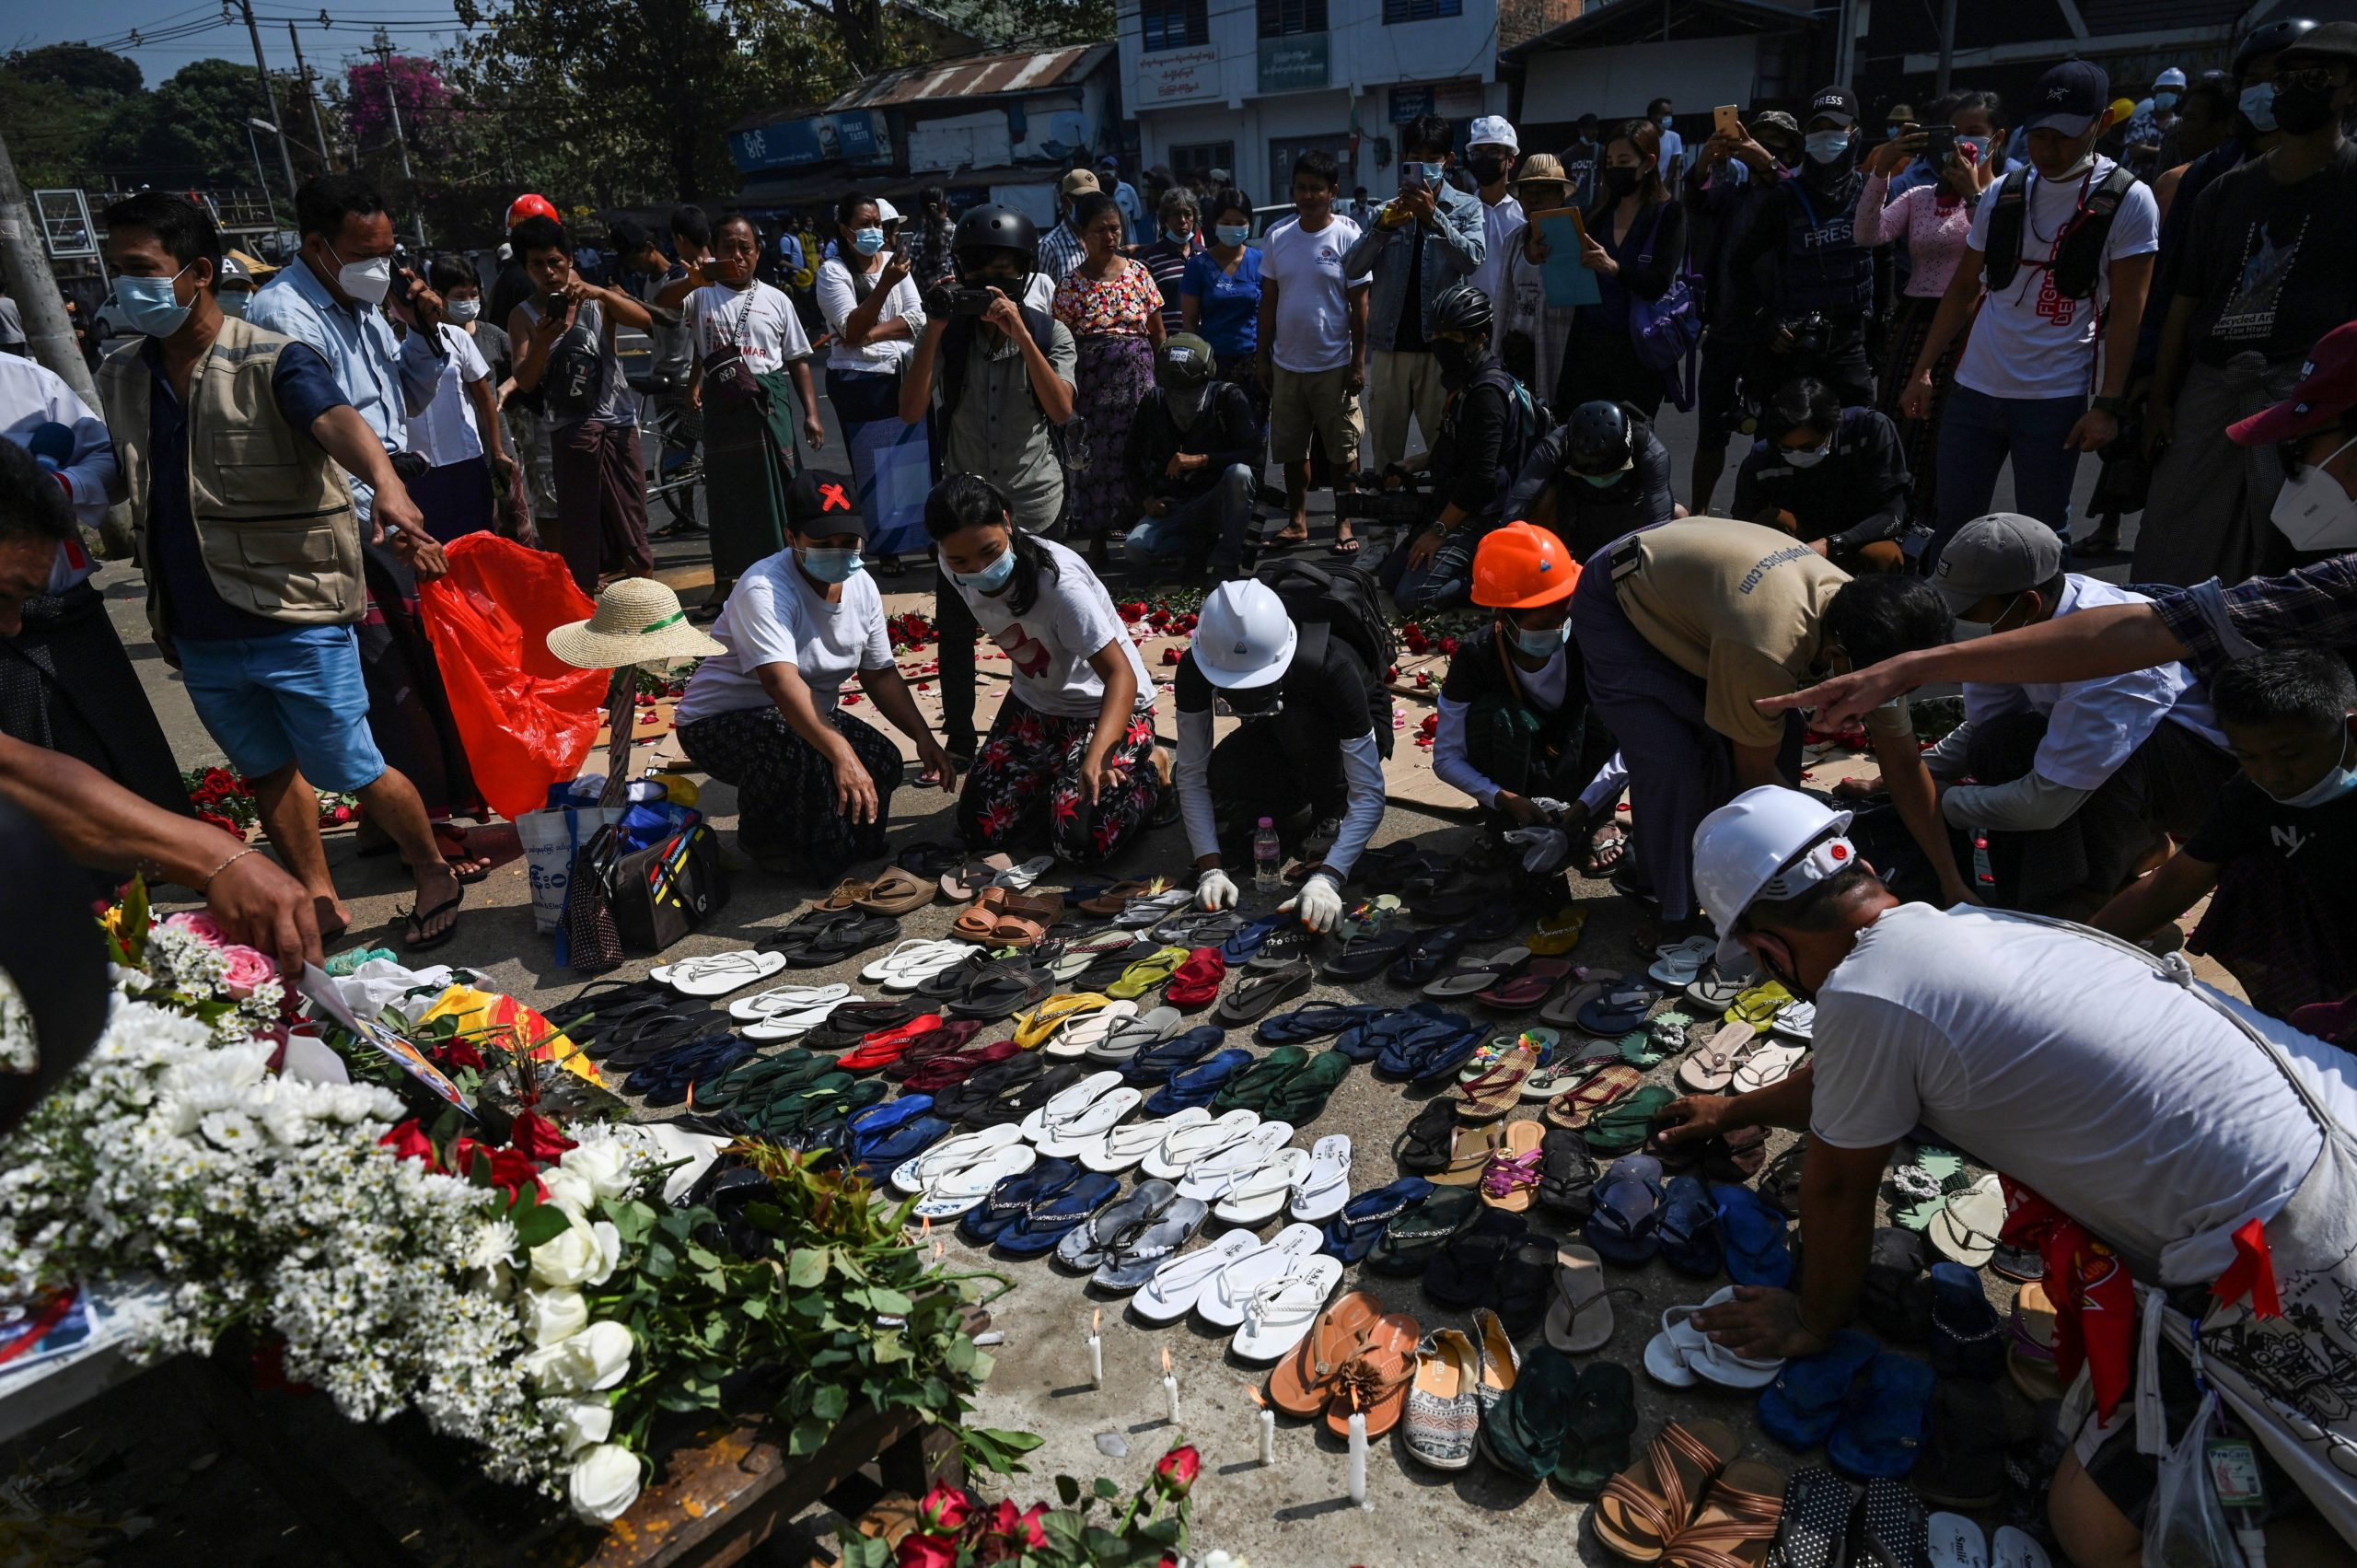 Protesters arrange abandoned flip flops and other belongings next to a makeshift altar for teacher Tin Nwe Yi left behind during a crackdown in Yangon on March 1, 2021 after she was killed during a demonstration against the military coup. (Photo by STR / AFP) (Photo by STR/AFP via Getty Images)